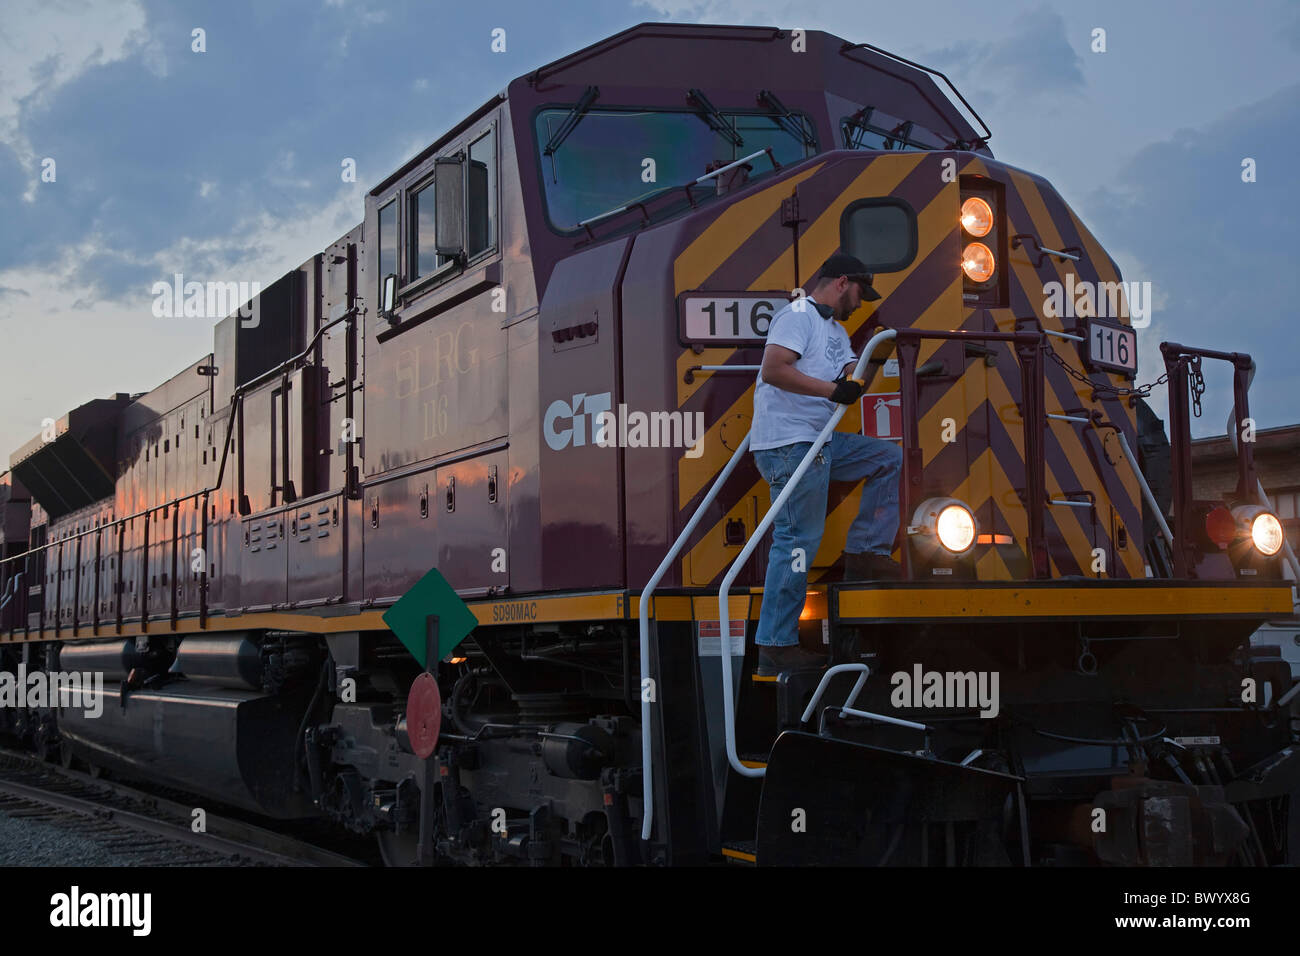 Alamosa, Colorado - A worker climbs onto a locomotive of the Rio Grande Scenic Railroad at the station in Alamosa. - Stock Image